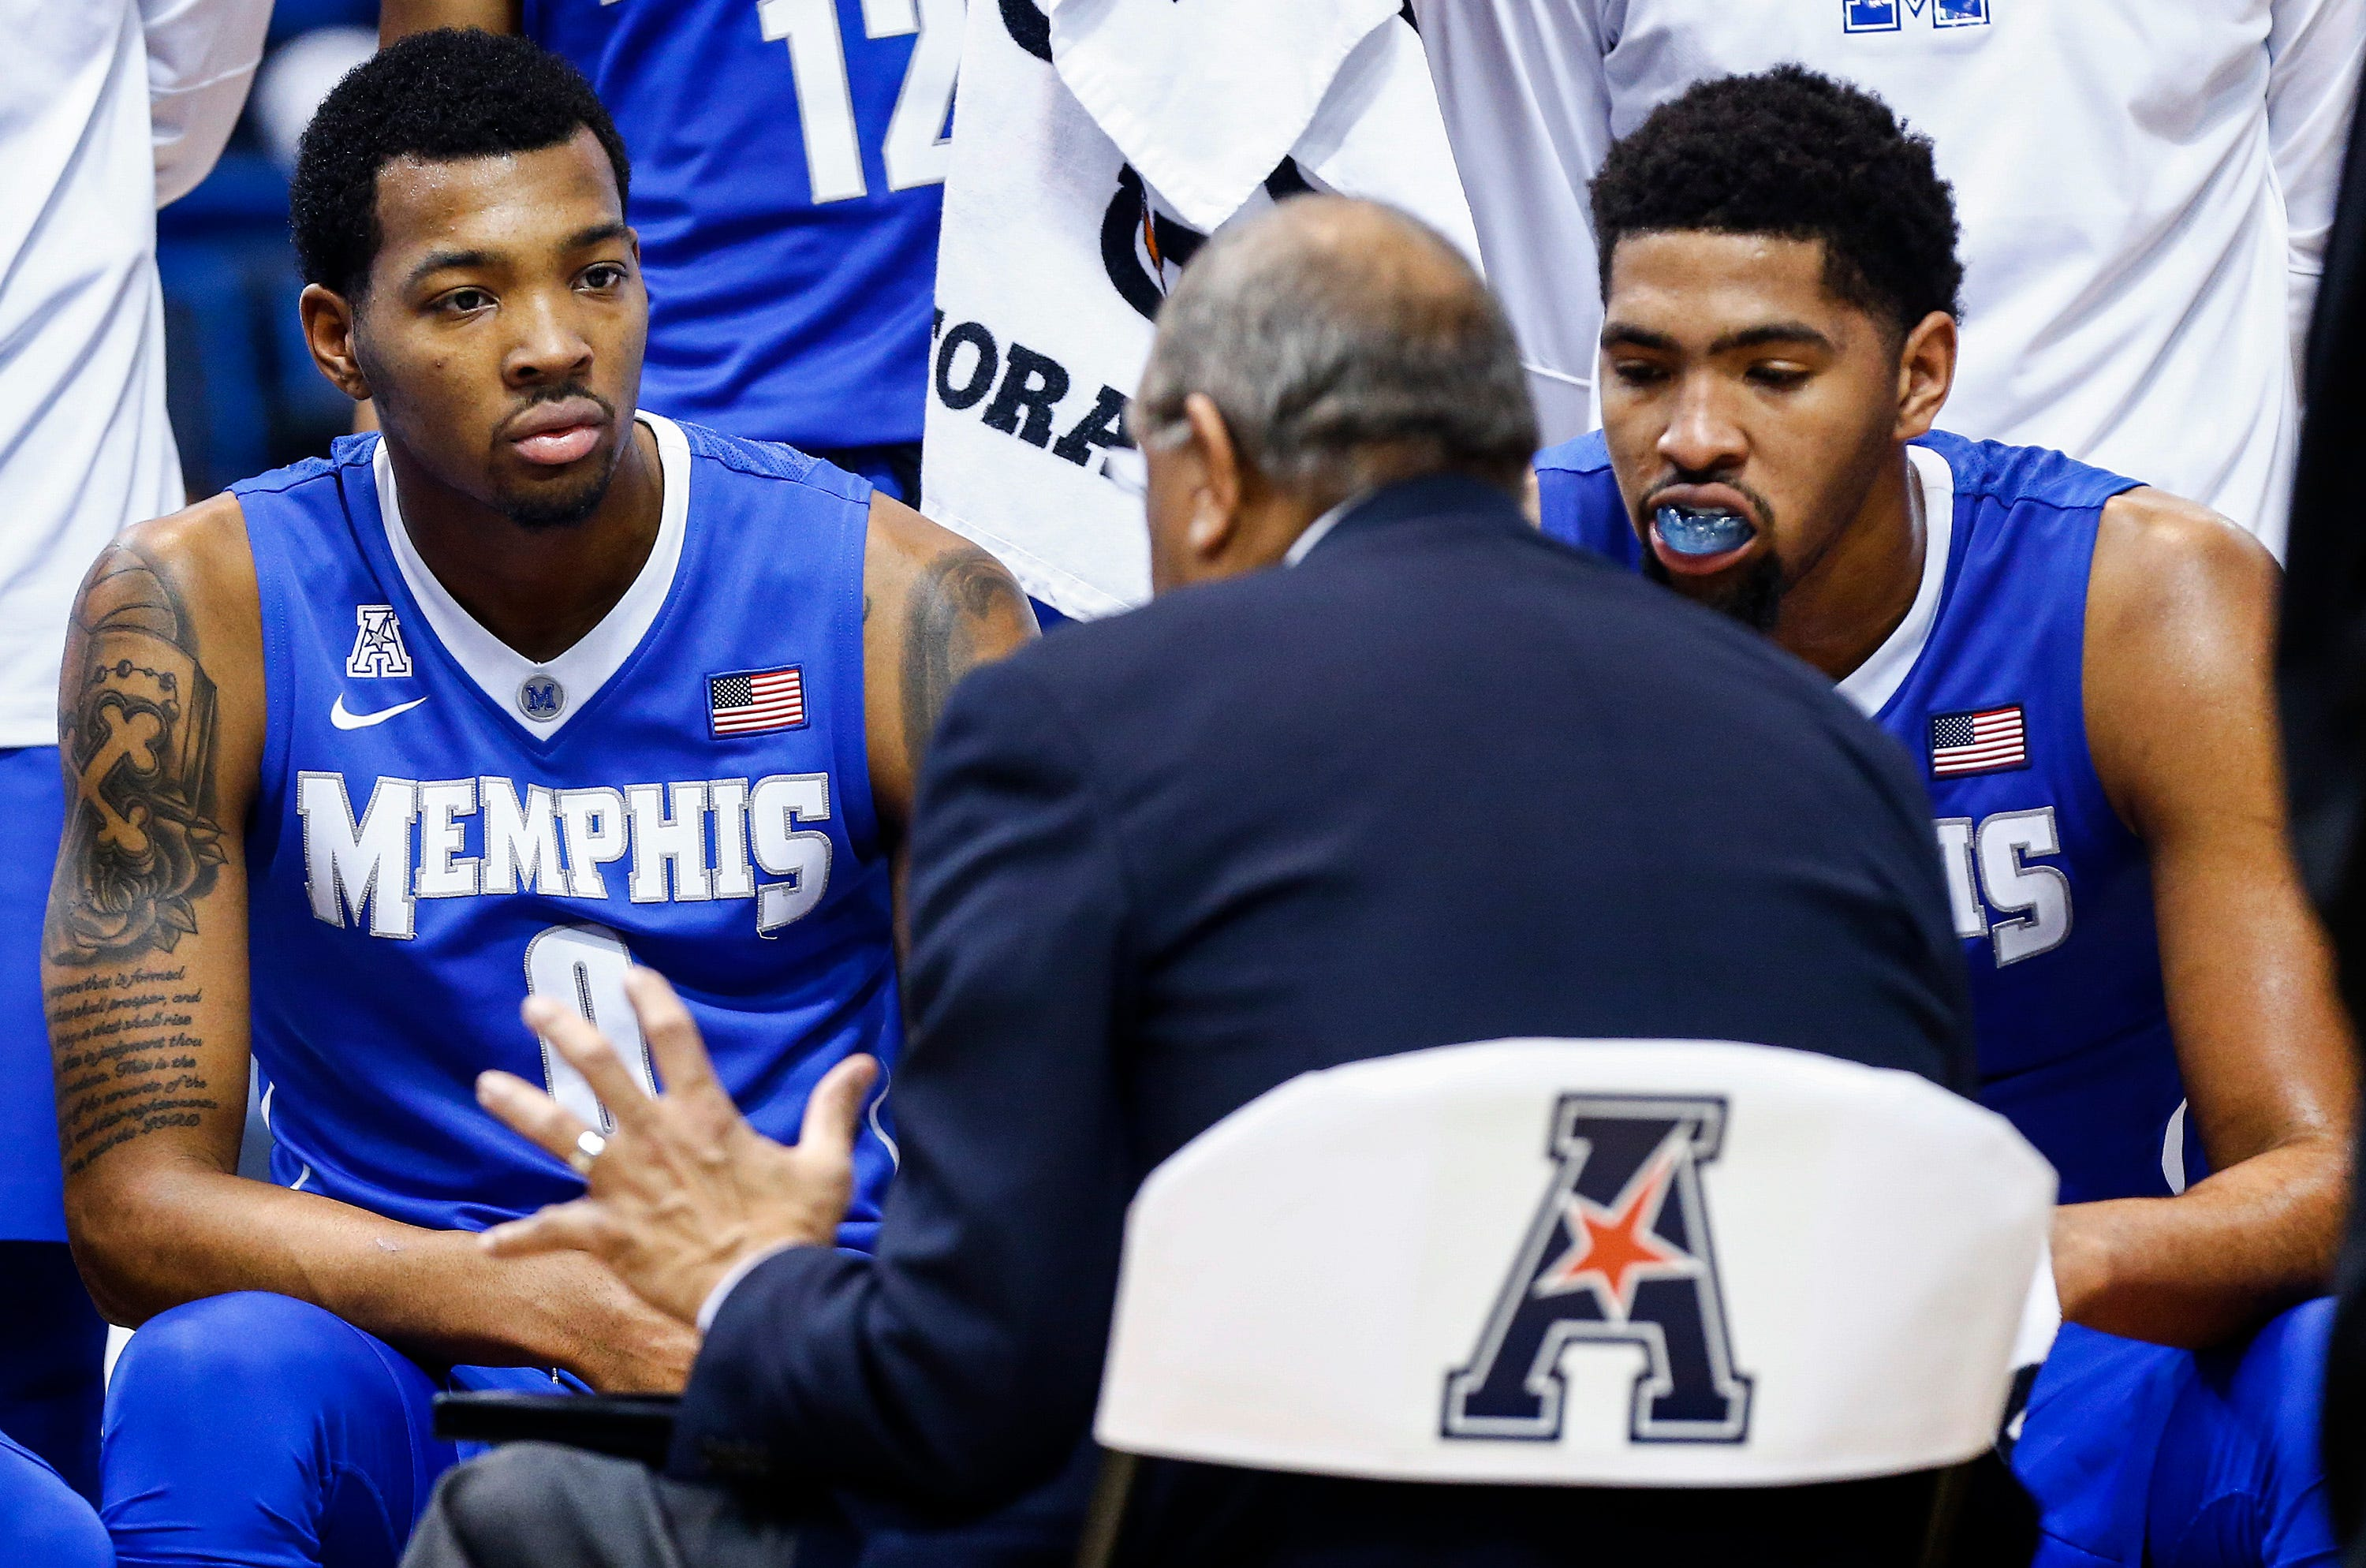 K.J. Lawson directs expletive at Tubby Smith in video